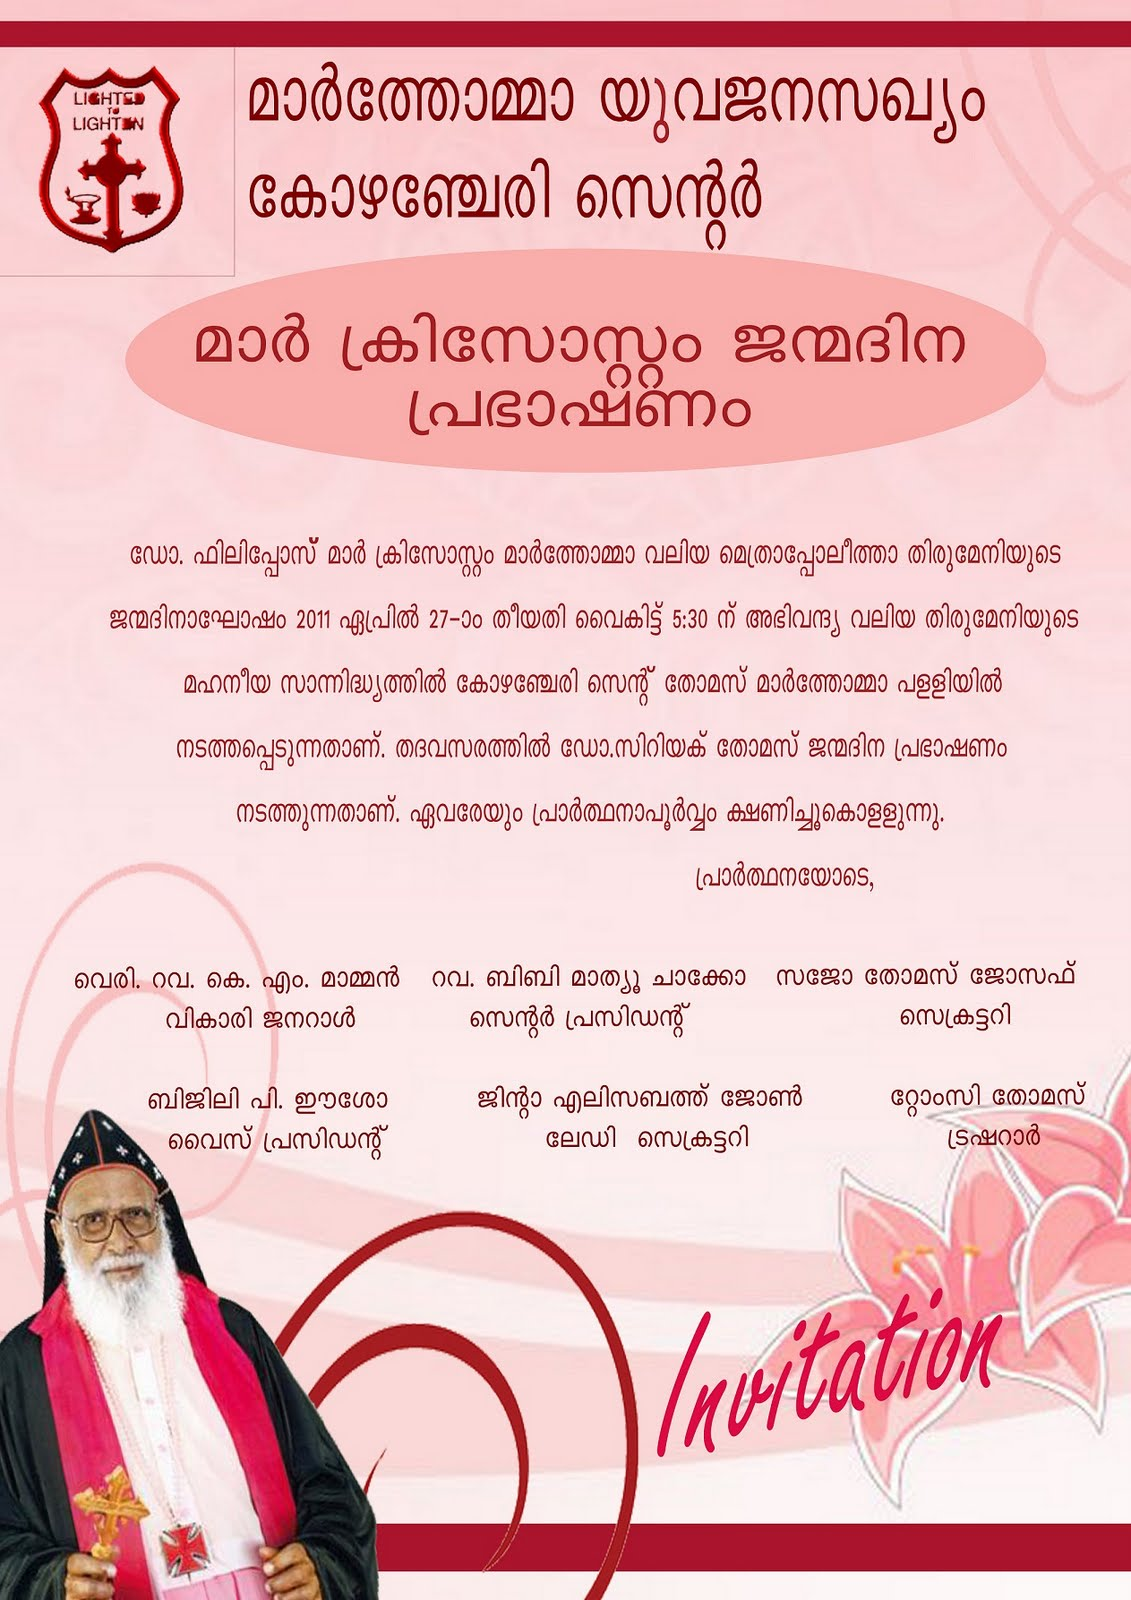 mar thoma yuvajana sakhyam kozhencherry centre april 2011 sample birthday speech 1131x1600